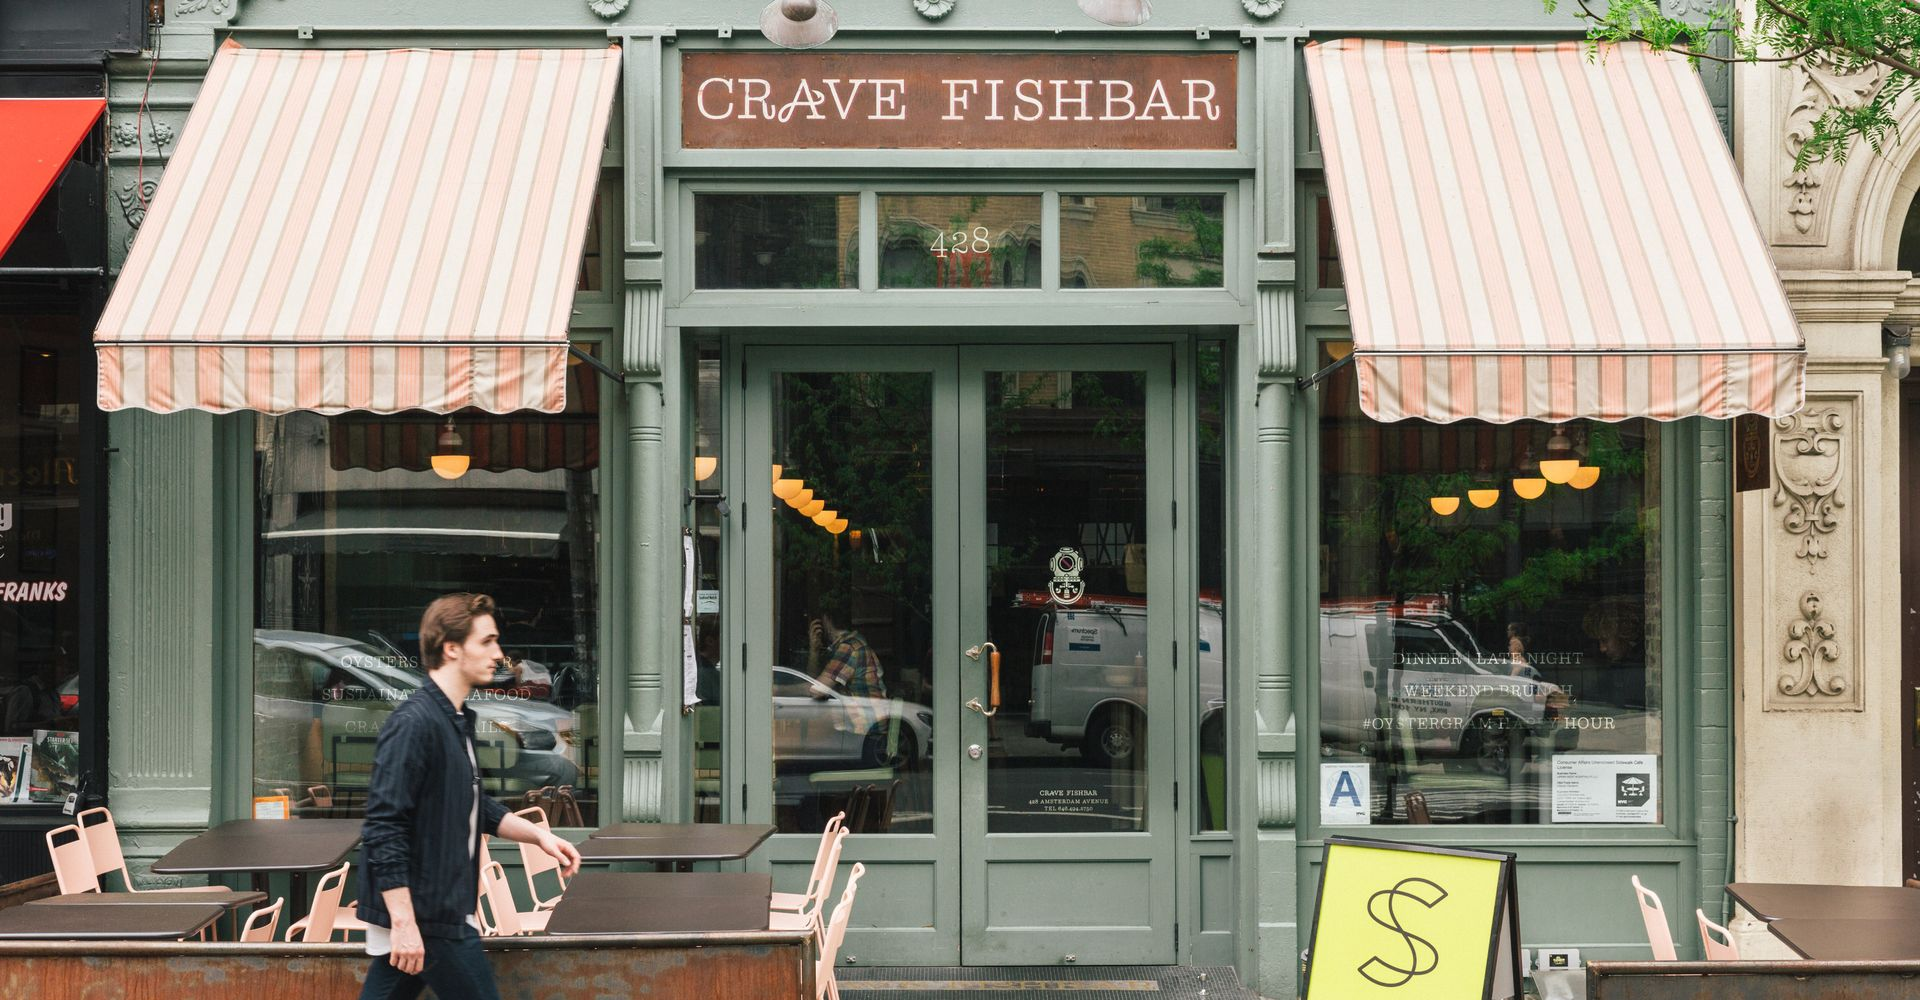 Spacious Crave Fishbar, NYC